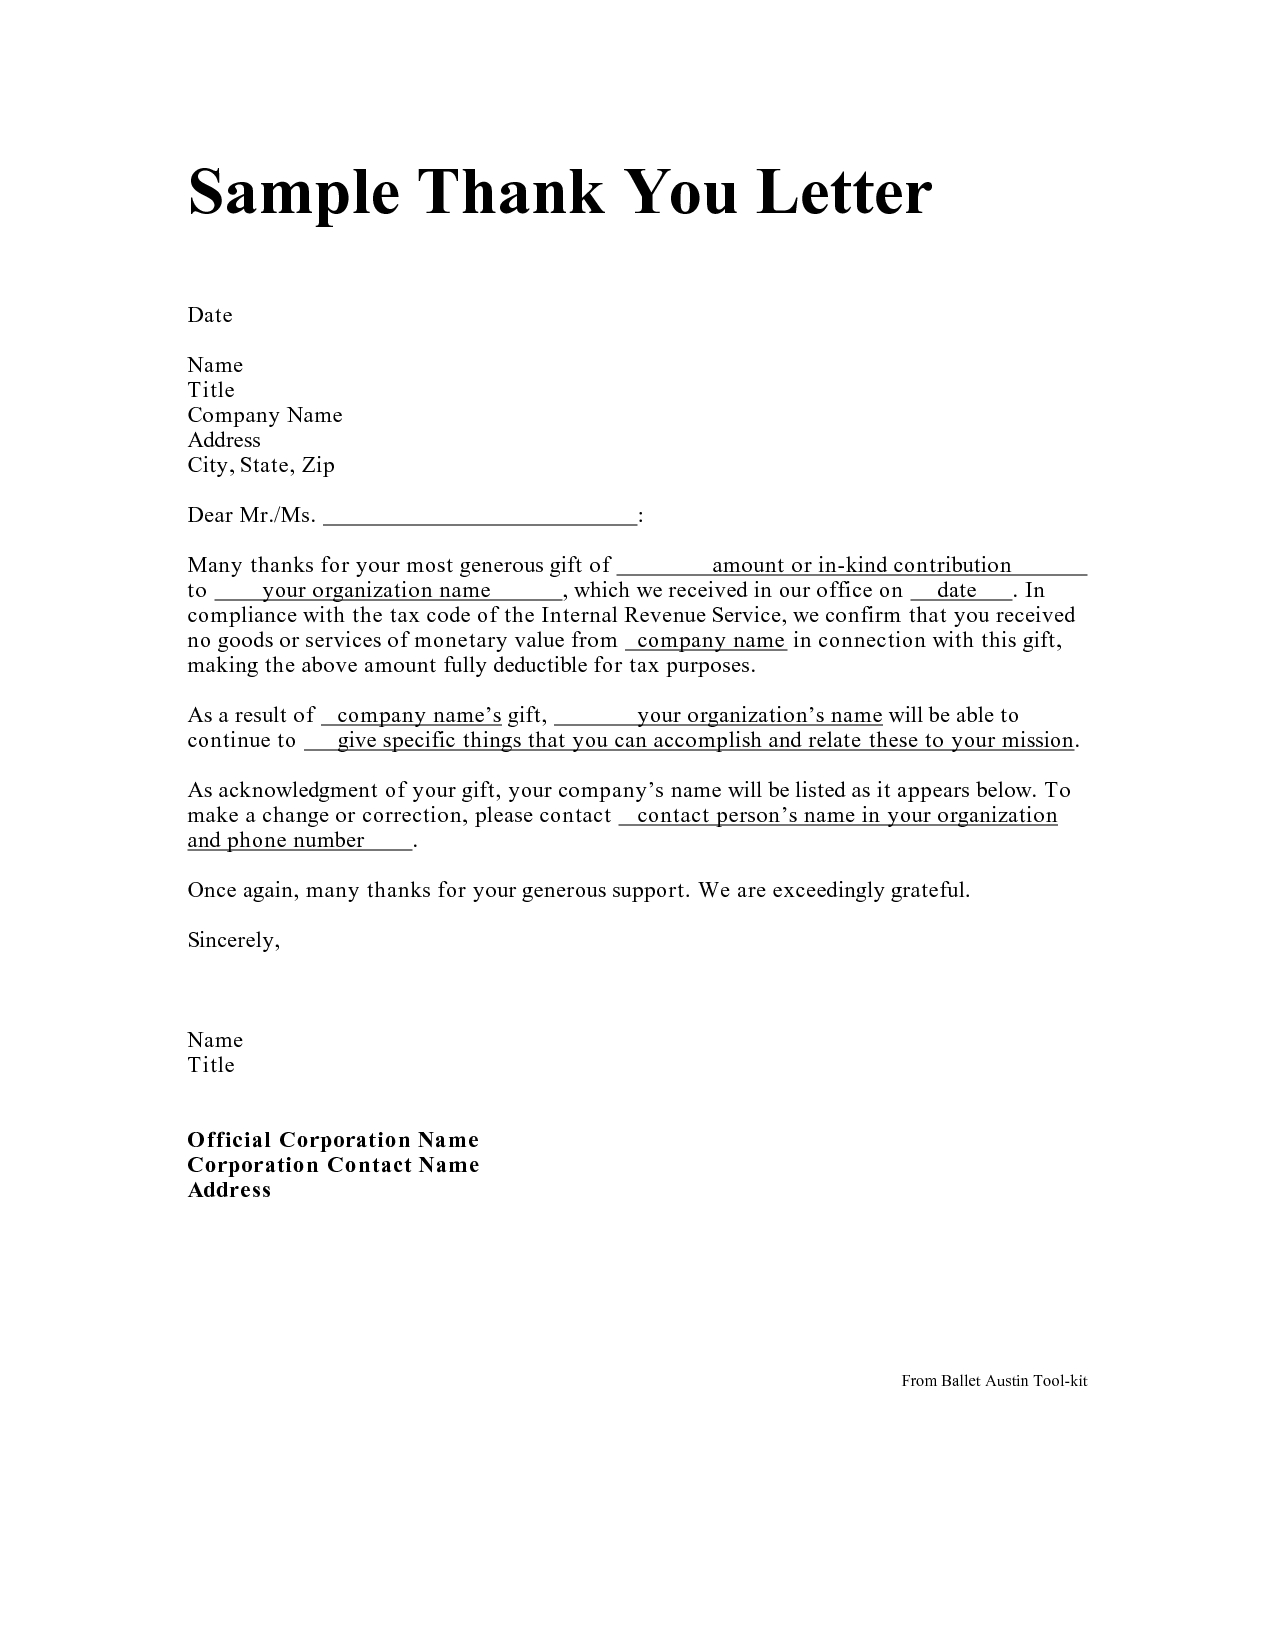 How to Make A Donation Letter Template - Personal Thank You Letter Personal Thank You Letter Samples